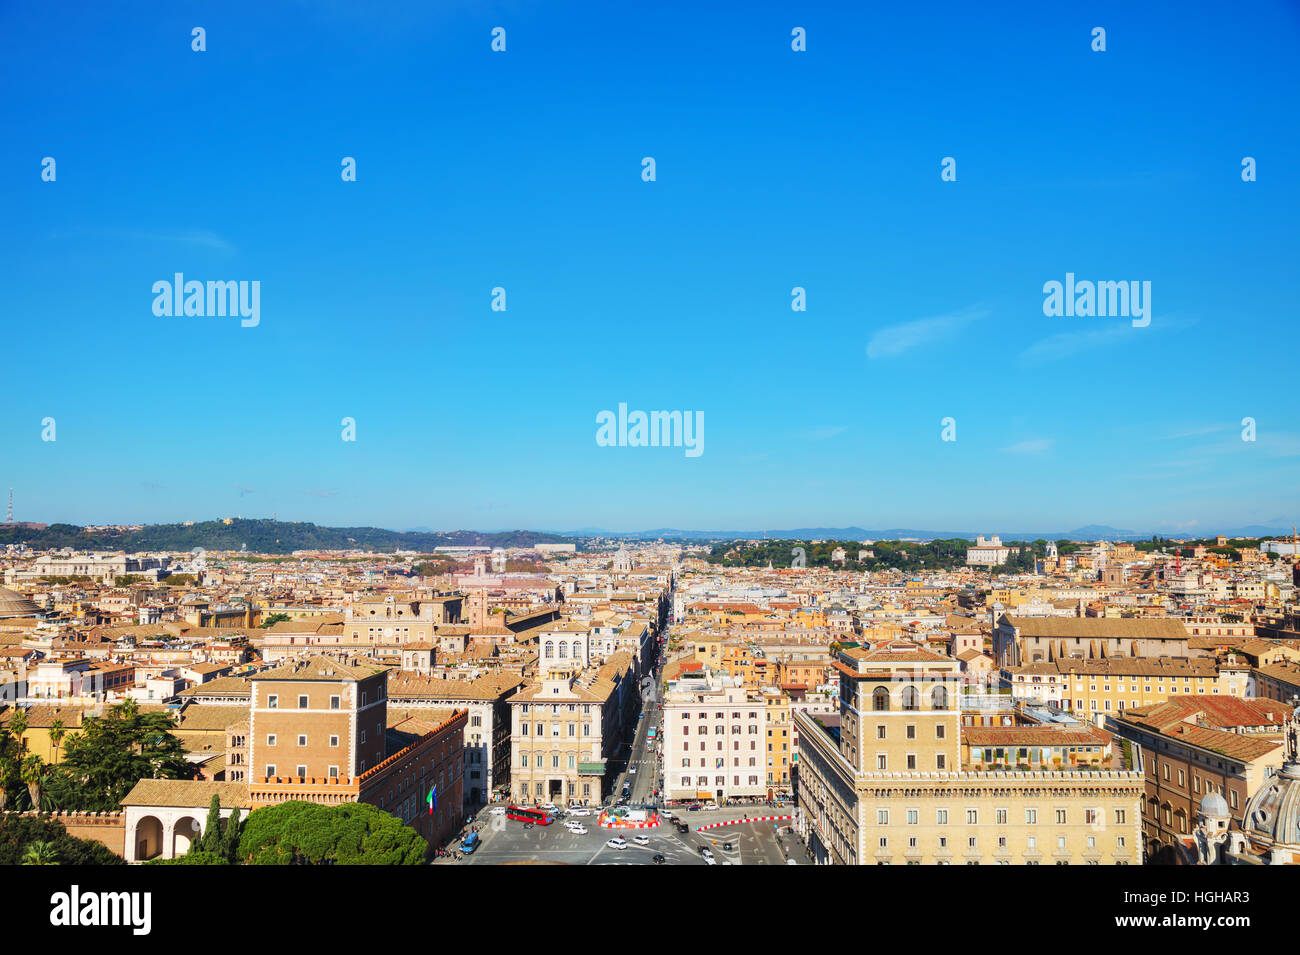 Rome aerial view with piazza Venezia on a sunny day - Stock Image